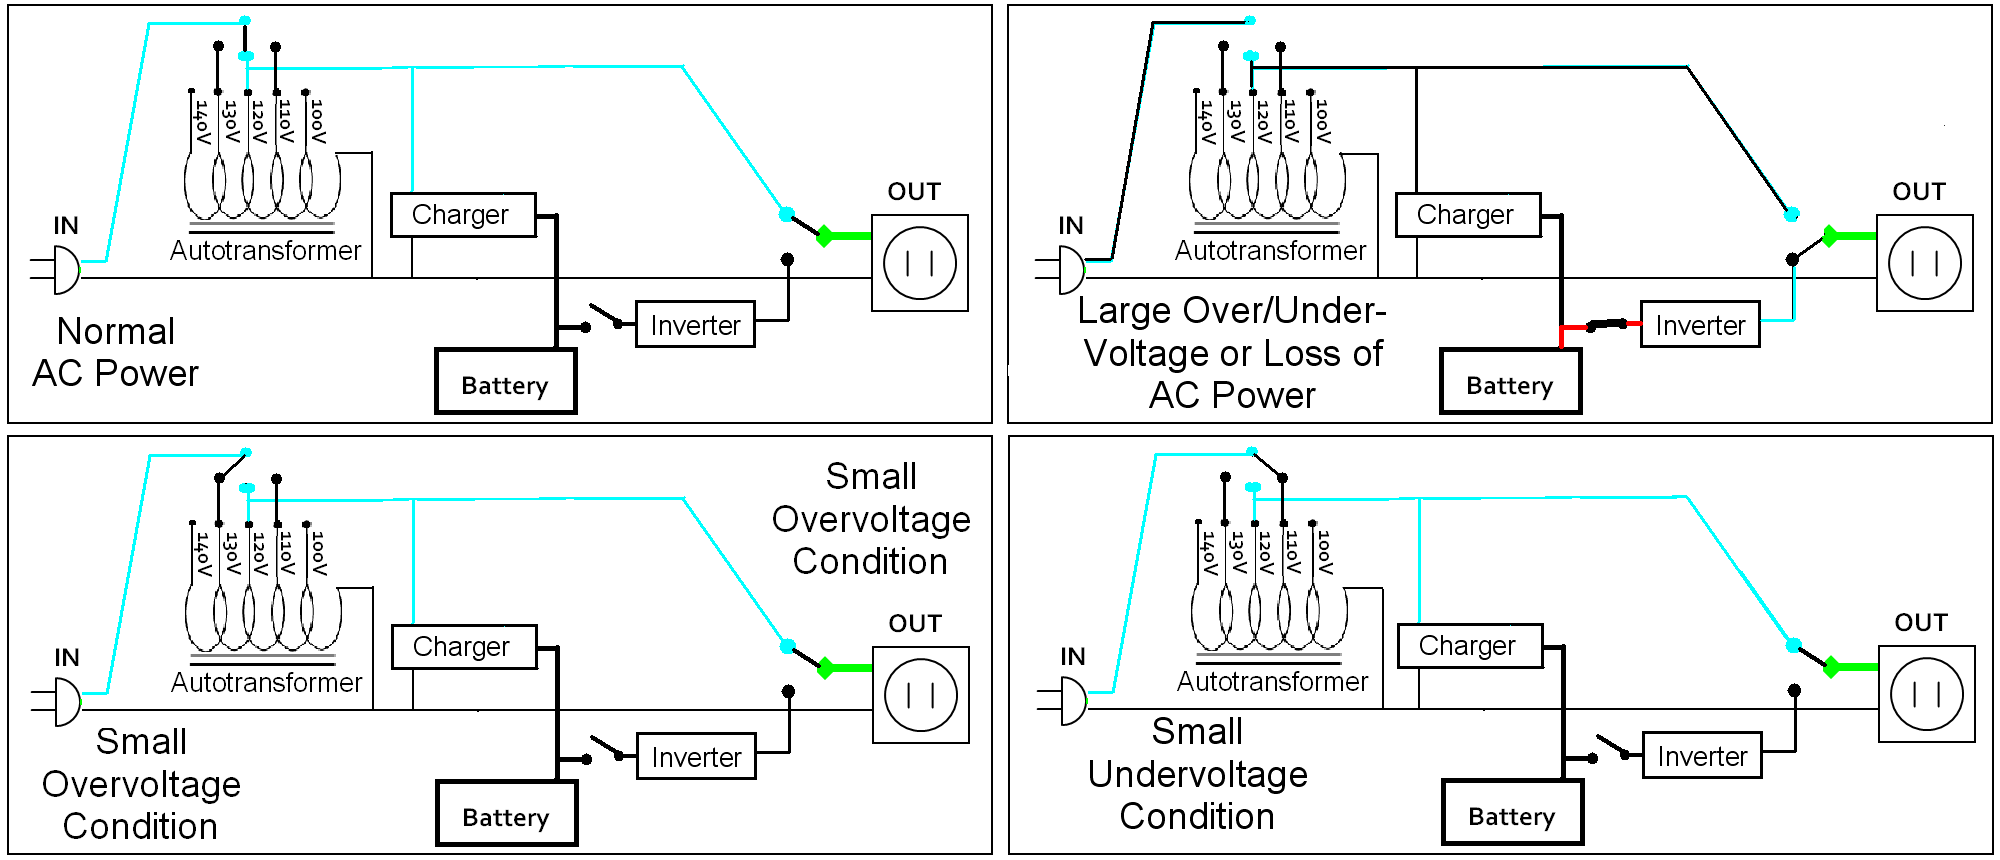 Online Wiring Schematic moreover Ups additionally Inverter Wiring Diagram For Room Office furthermore PK1 additionally Ups Uninterruptable Power Supplies. on online ups circuit diagram